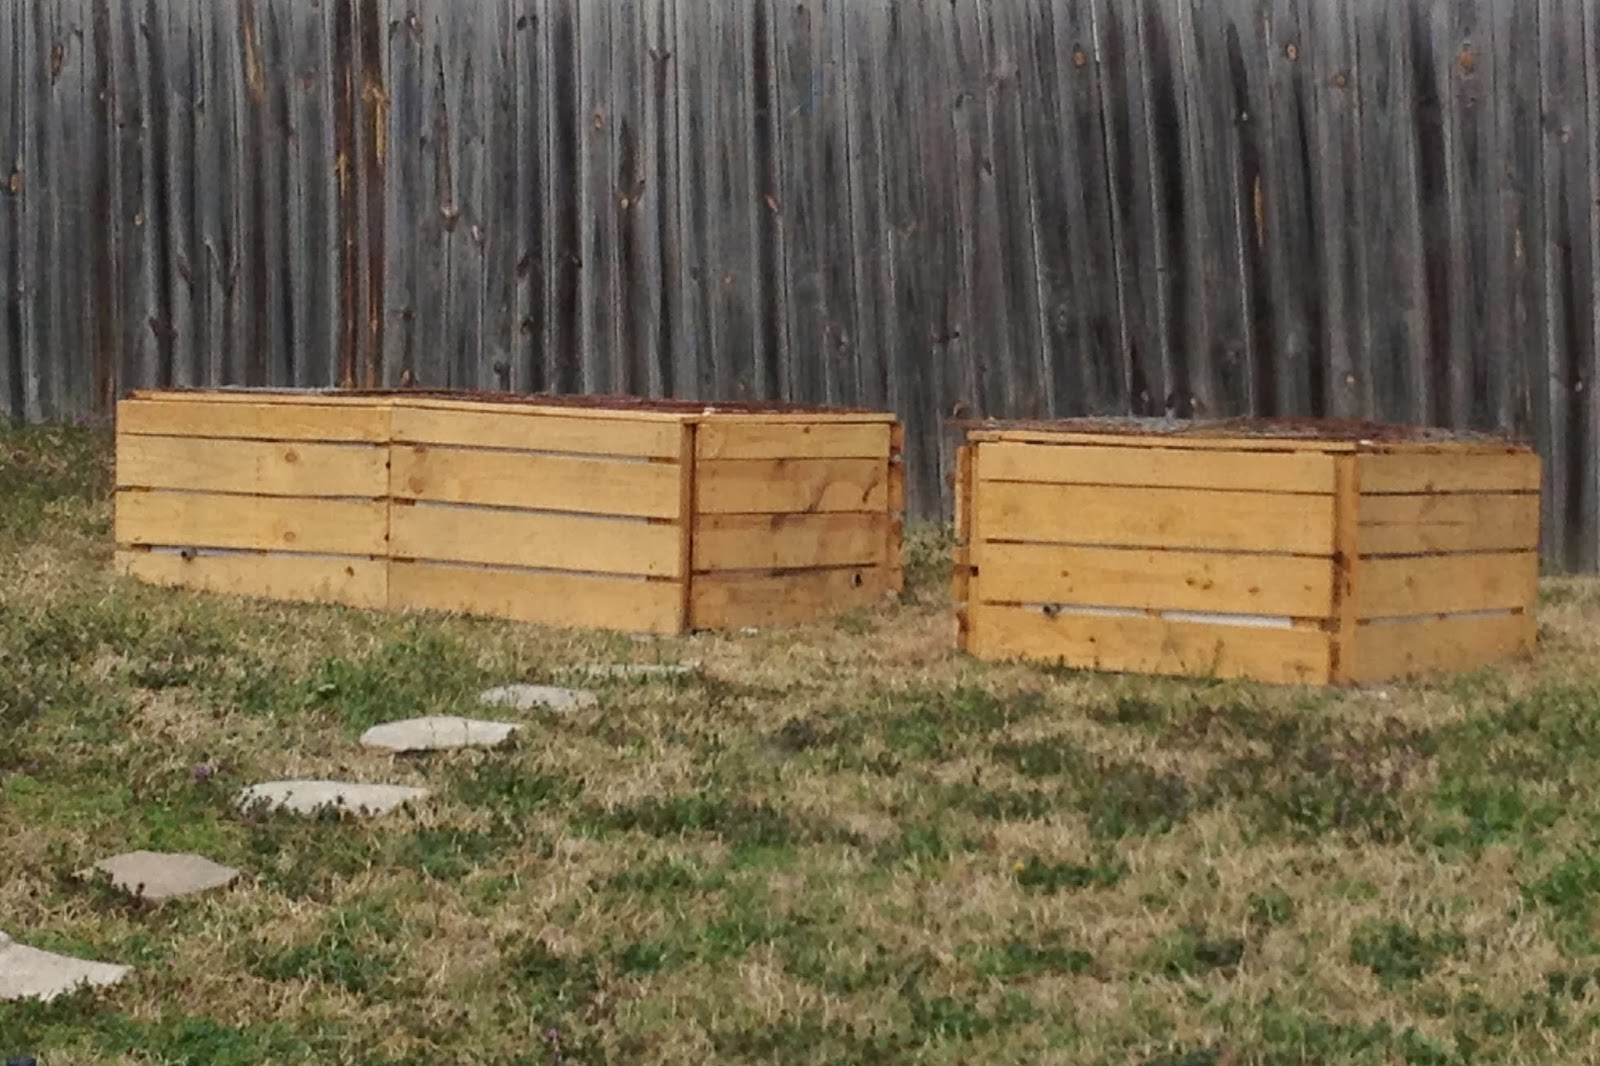 planter boxes made of pallets, on a lawn in front of a fence